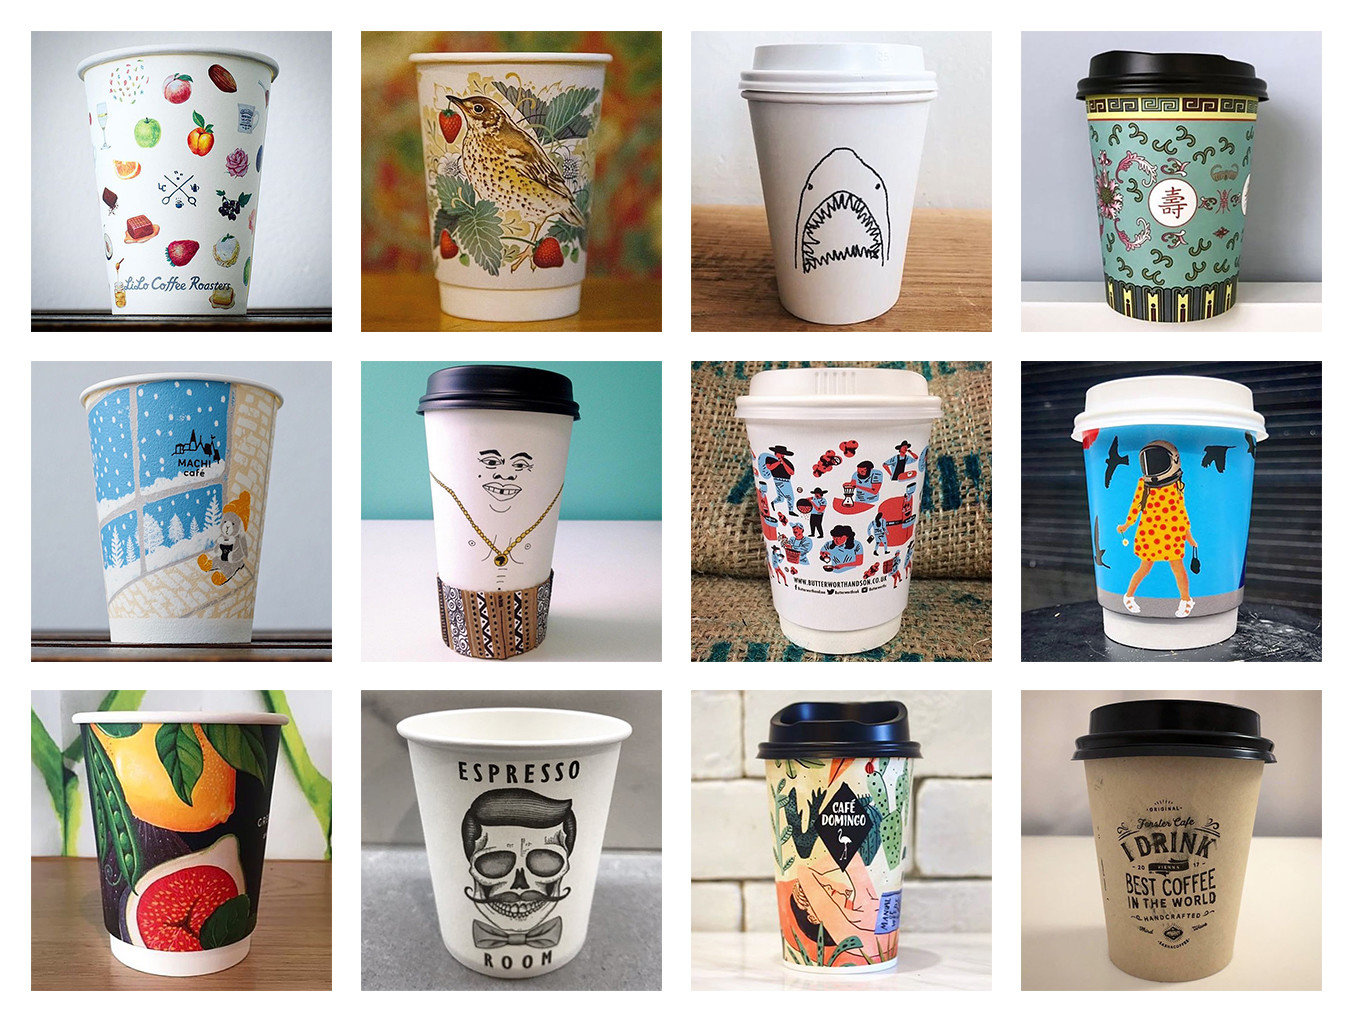 Food + Drink Influencers + Tastemakers coffee cup different cup mug tableware flowerpot product ceramic drinkware coffee cup sleeve plastic product design drink sleeve Dixie cup colored several